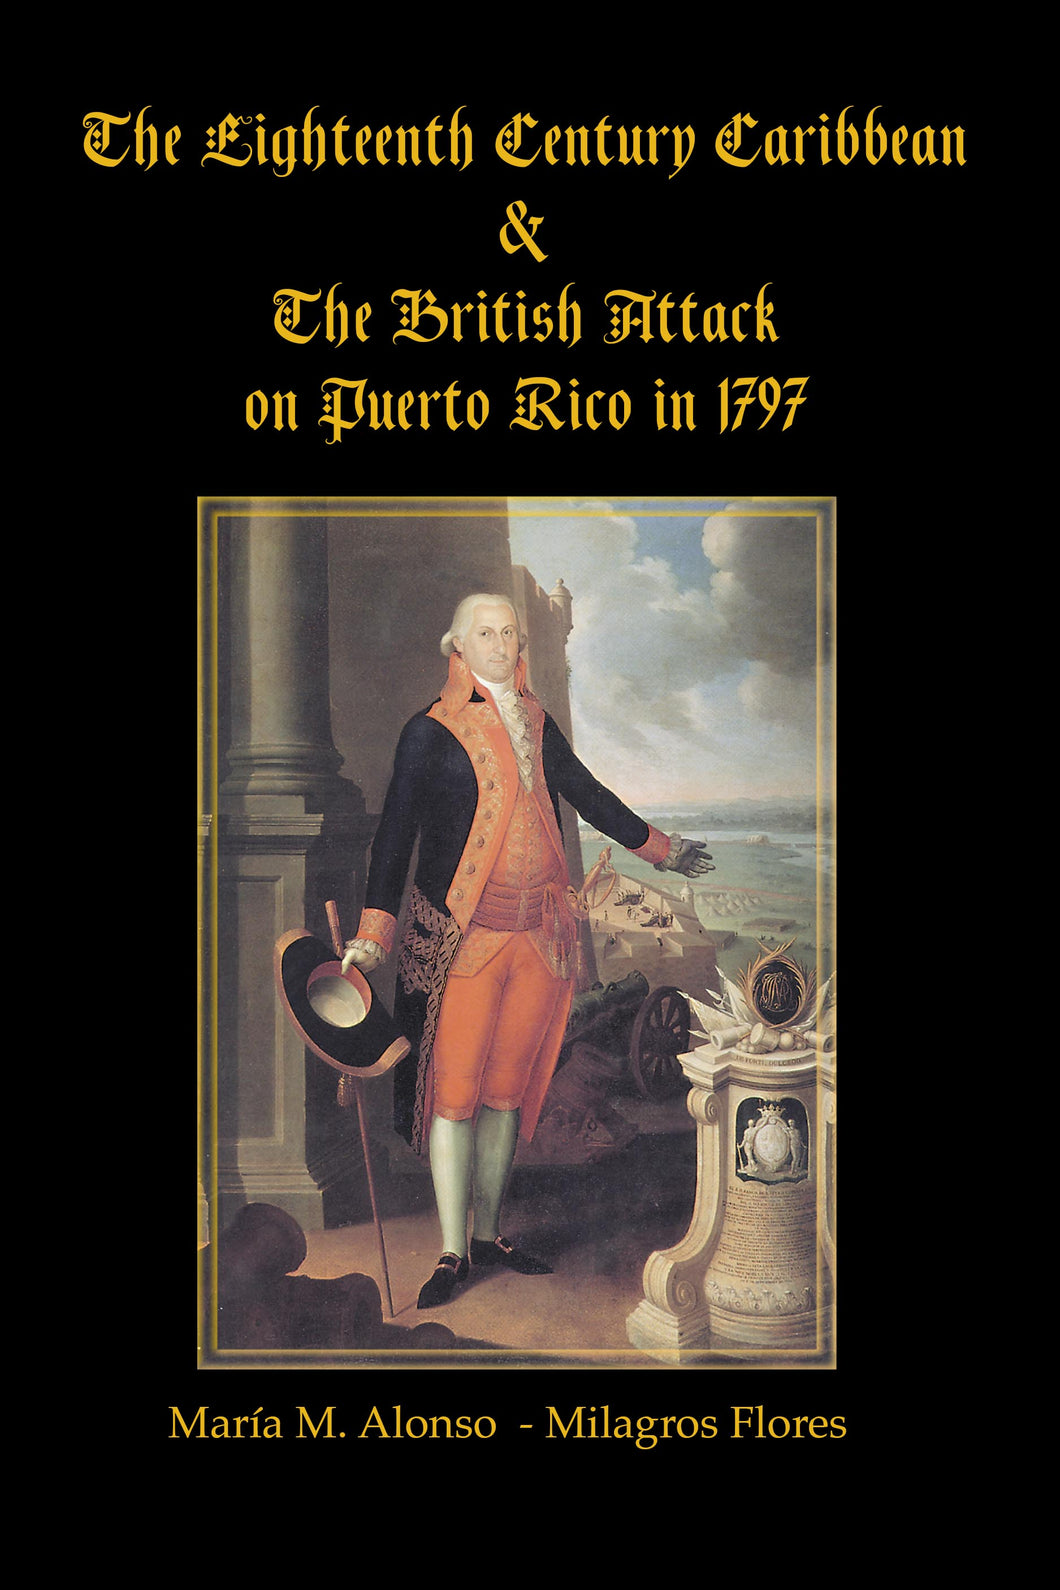 British Attack on Puerto Rico 1797